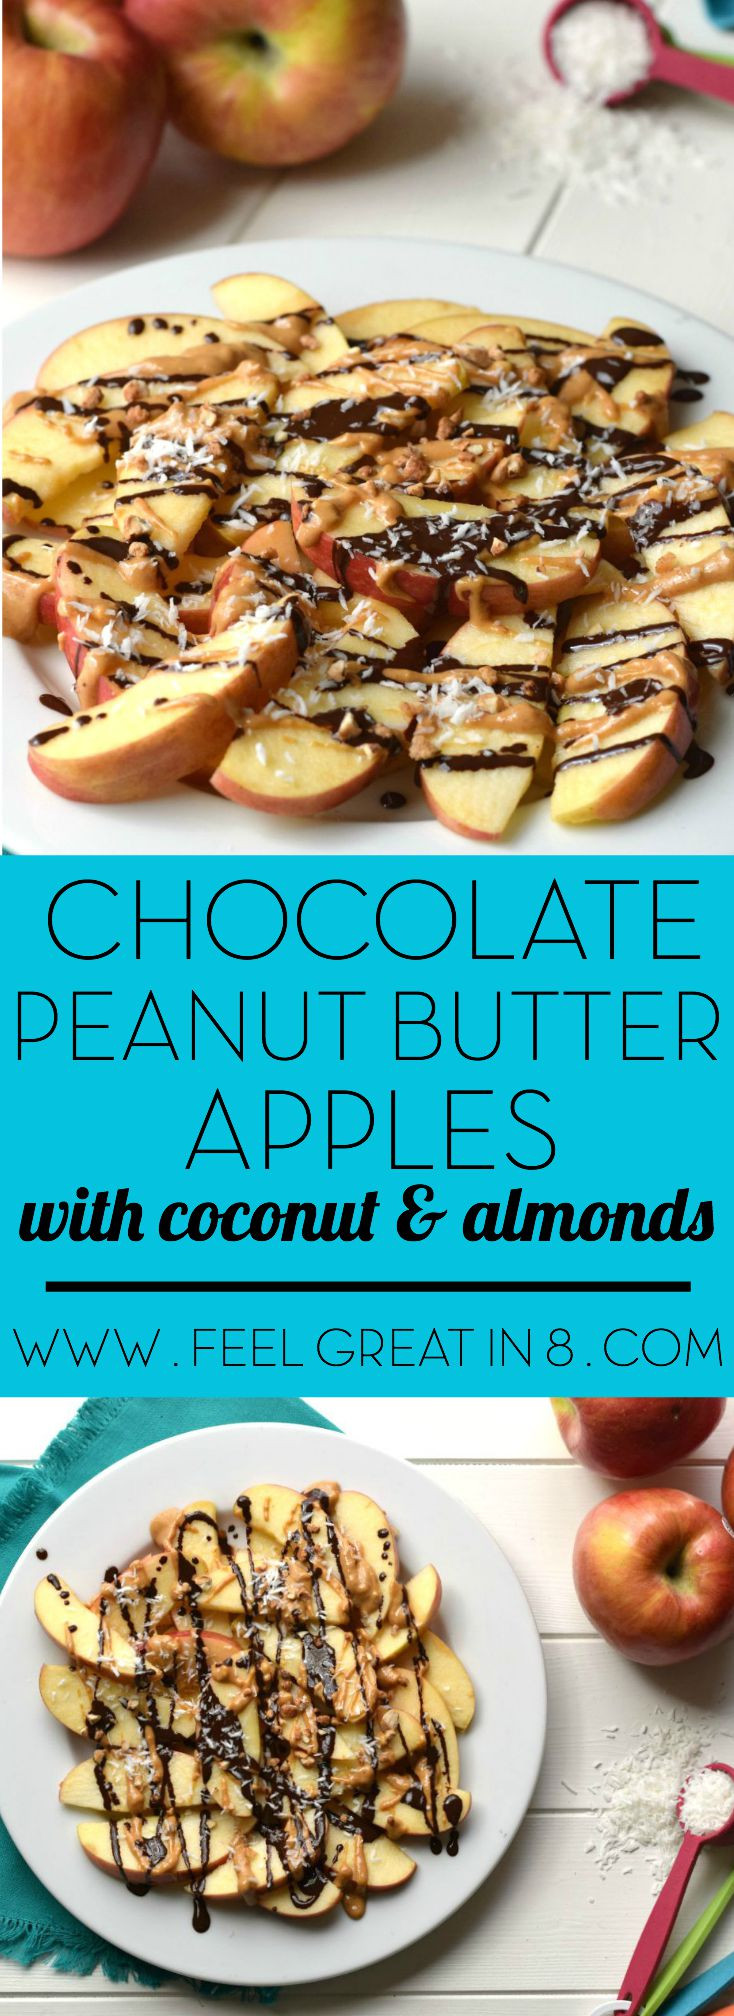 Peanut Butter Healthy Snacks  Dark Chocolate Peanut Butter Apples Feel Great in 8 Blog